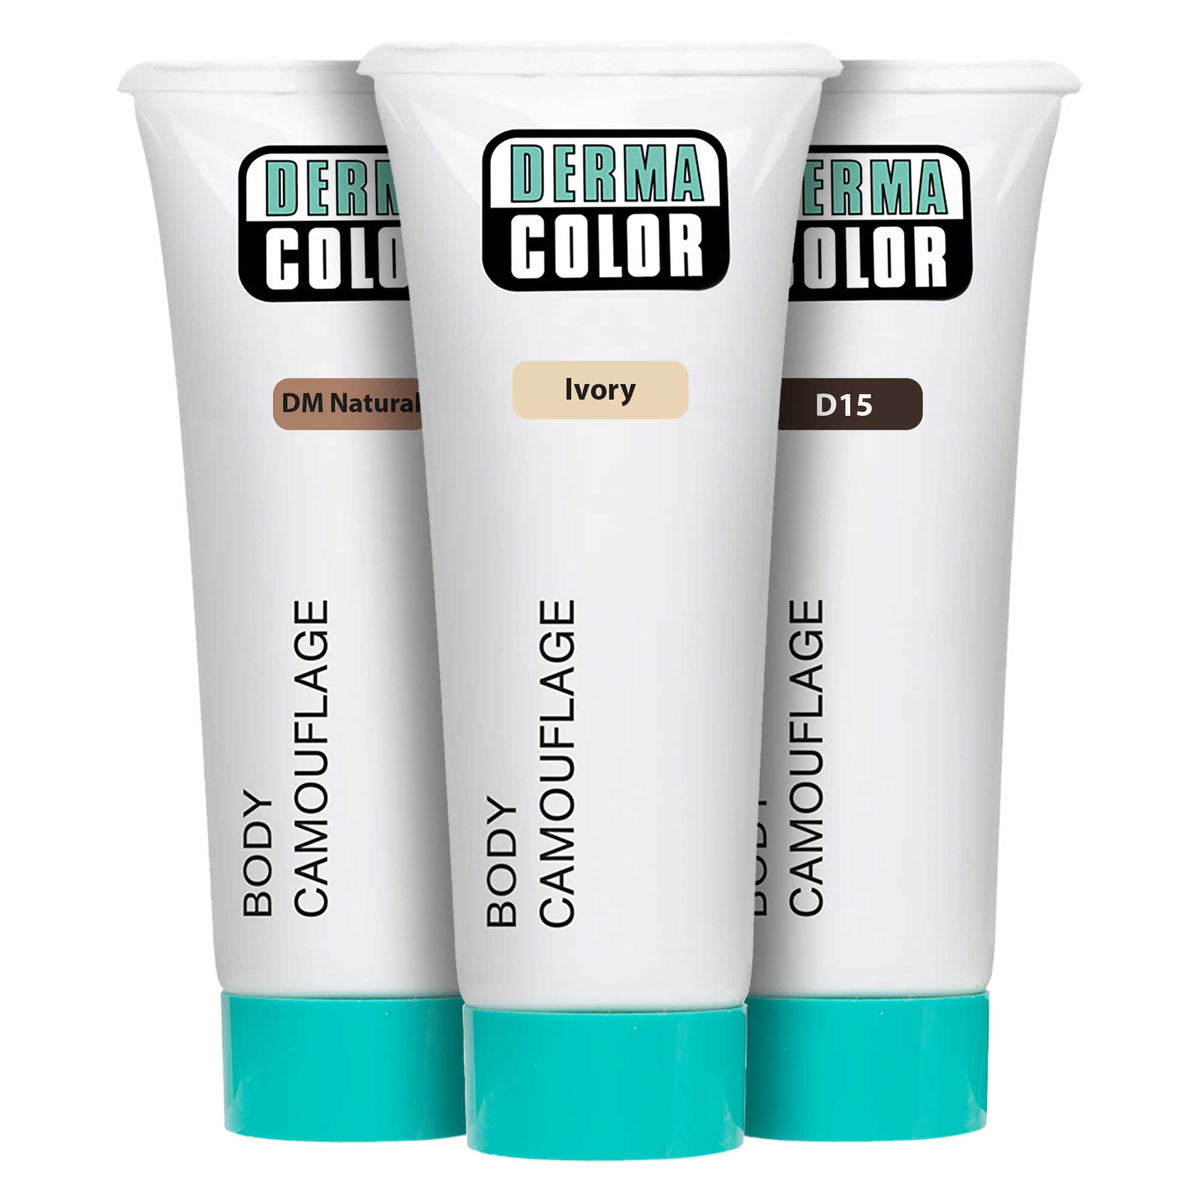 Dermacolor Body Camouflage - Cream Concealing Foundation